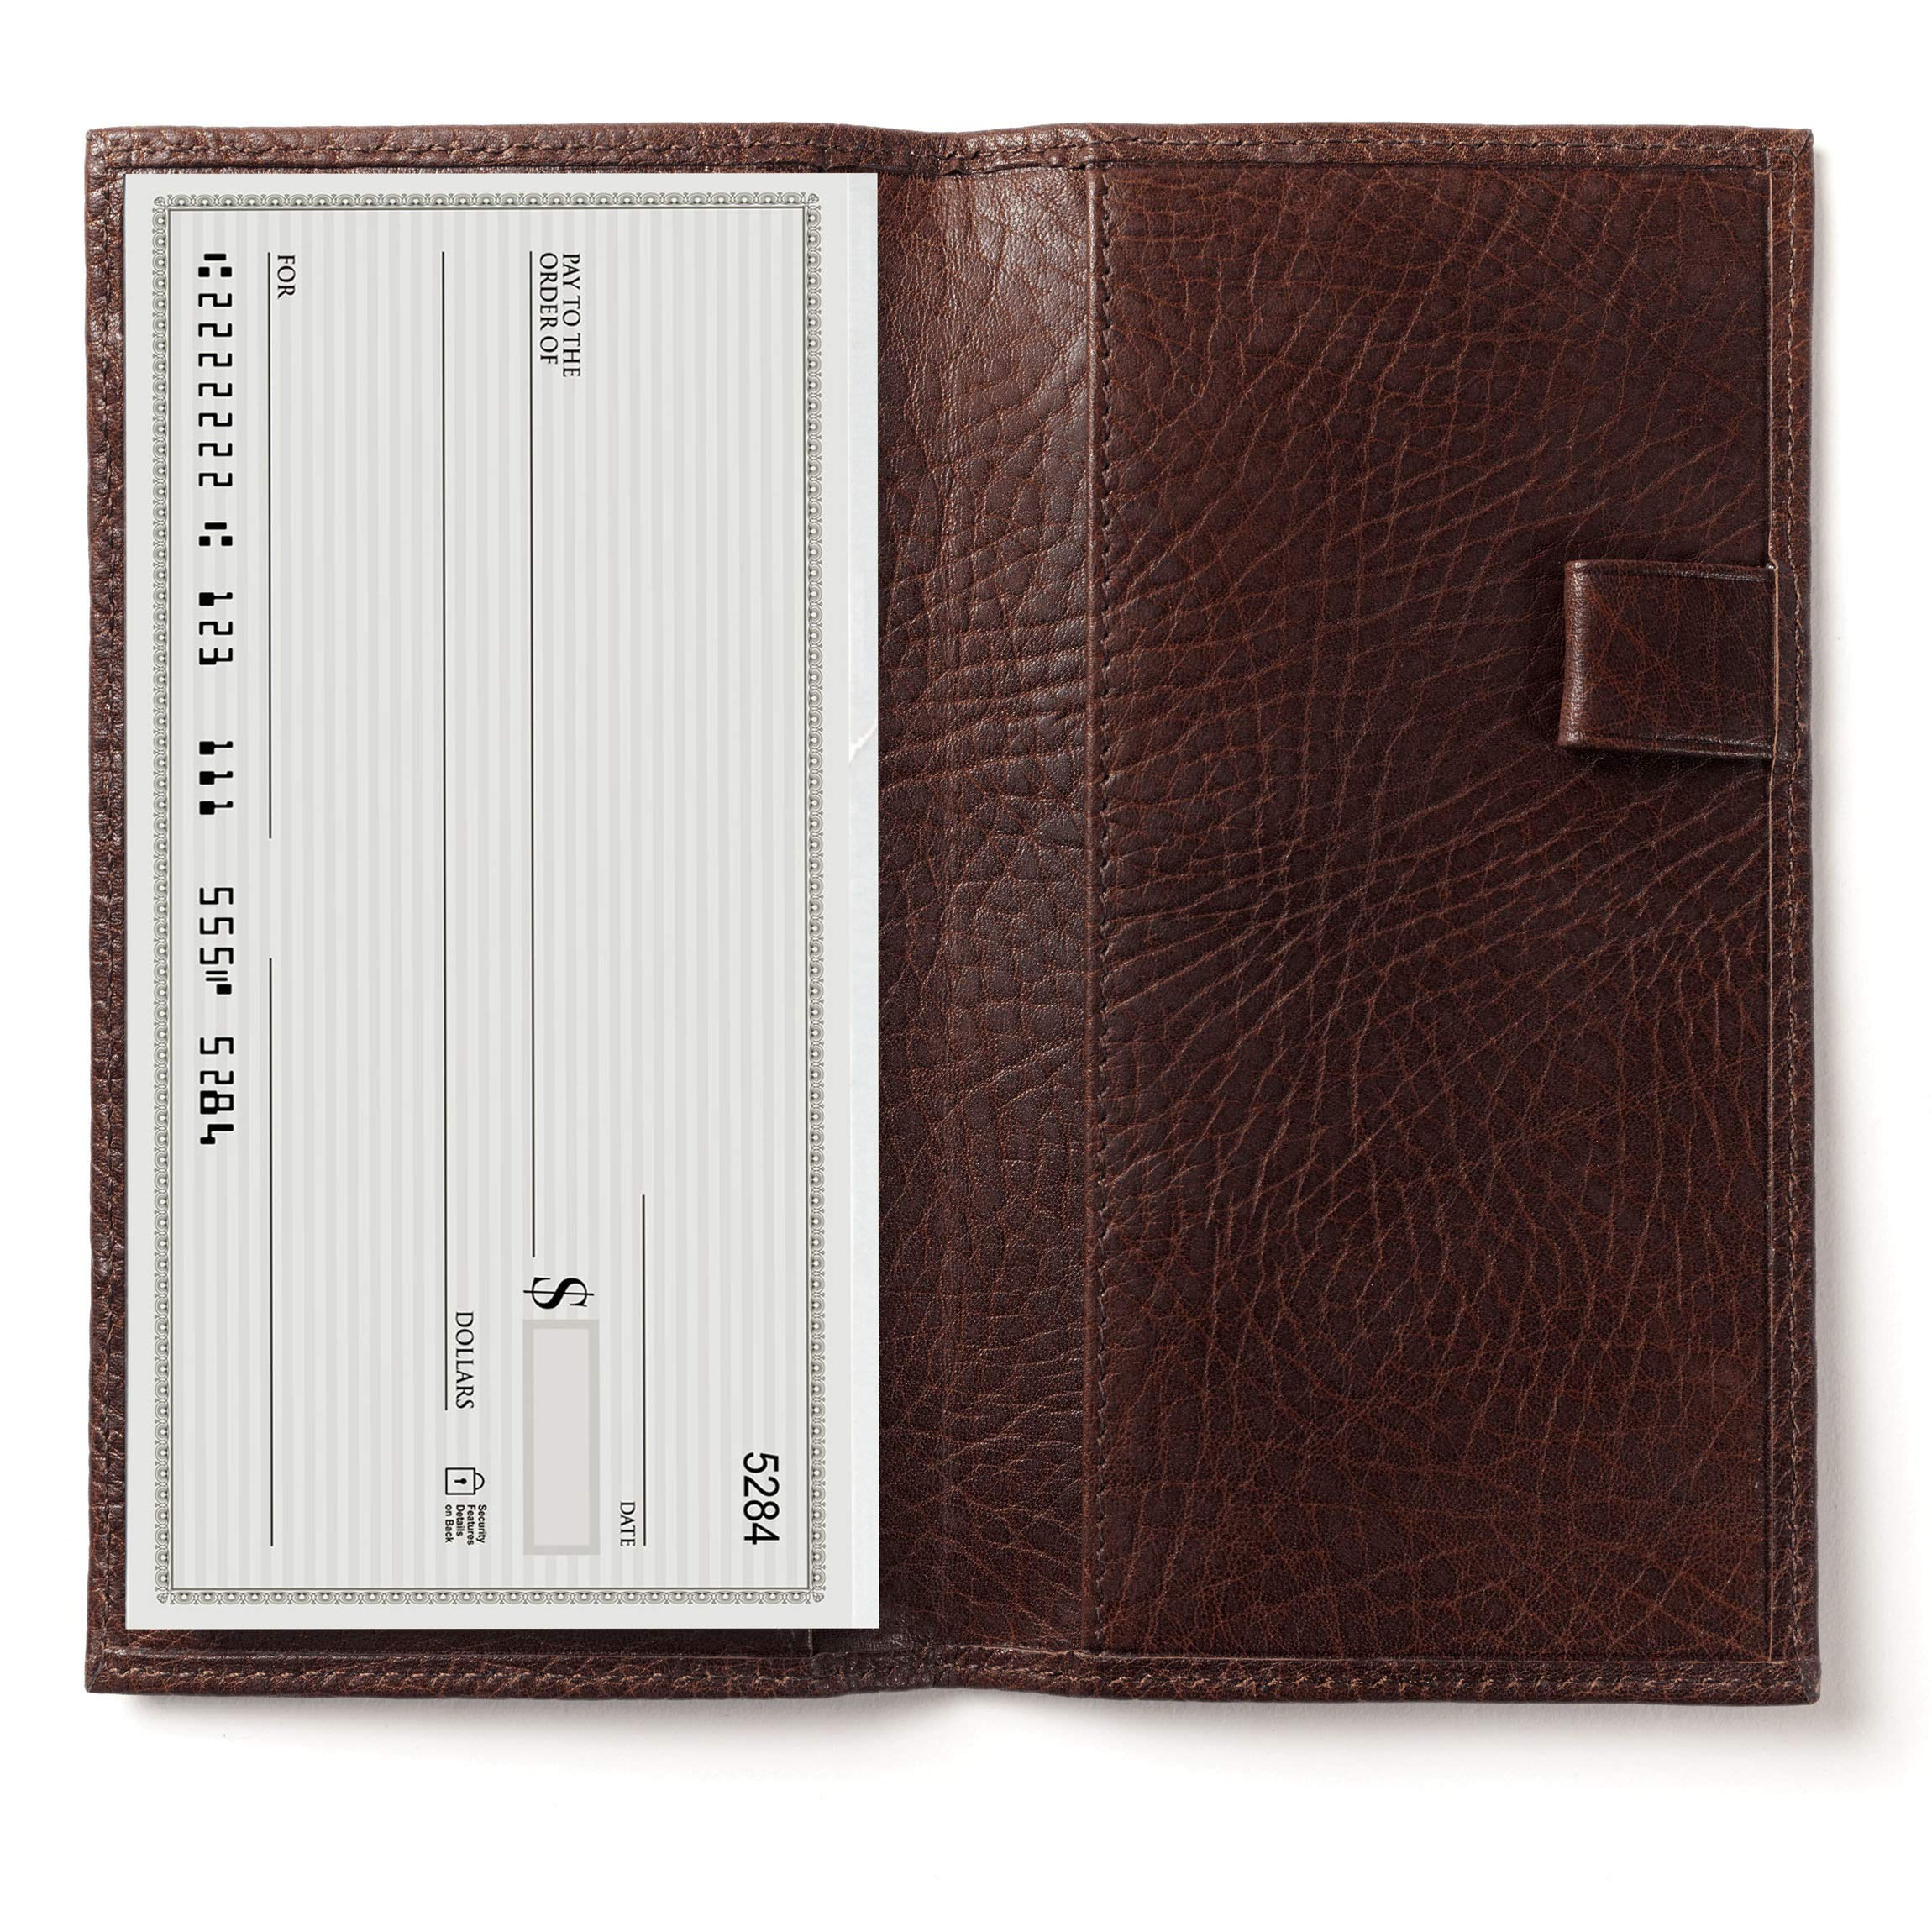 Deluxe Checkbook Cover with Divider - Italian Leather - Espresso (brown)